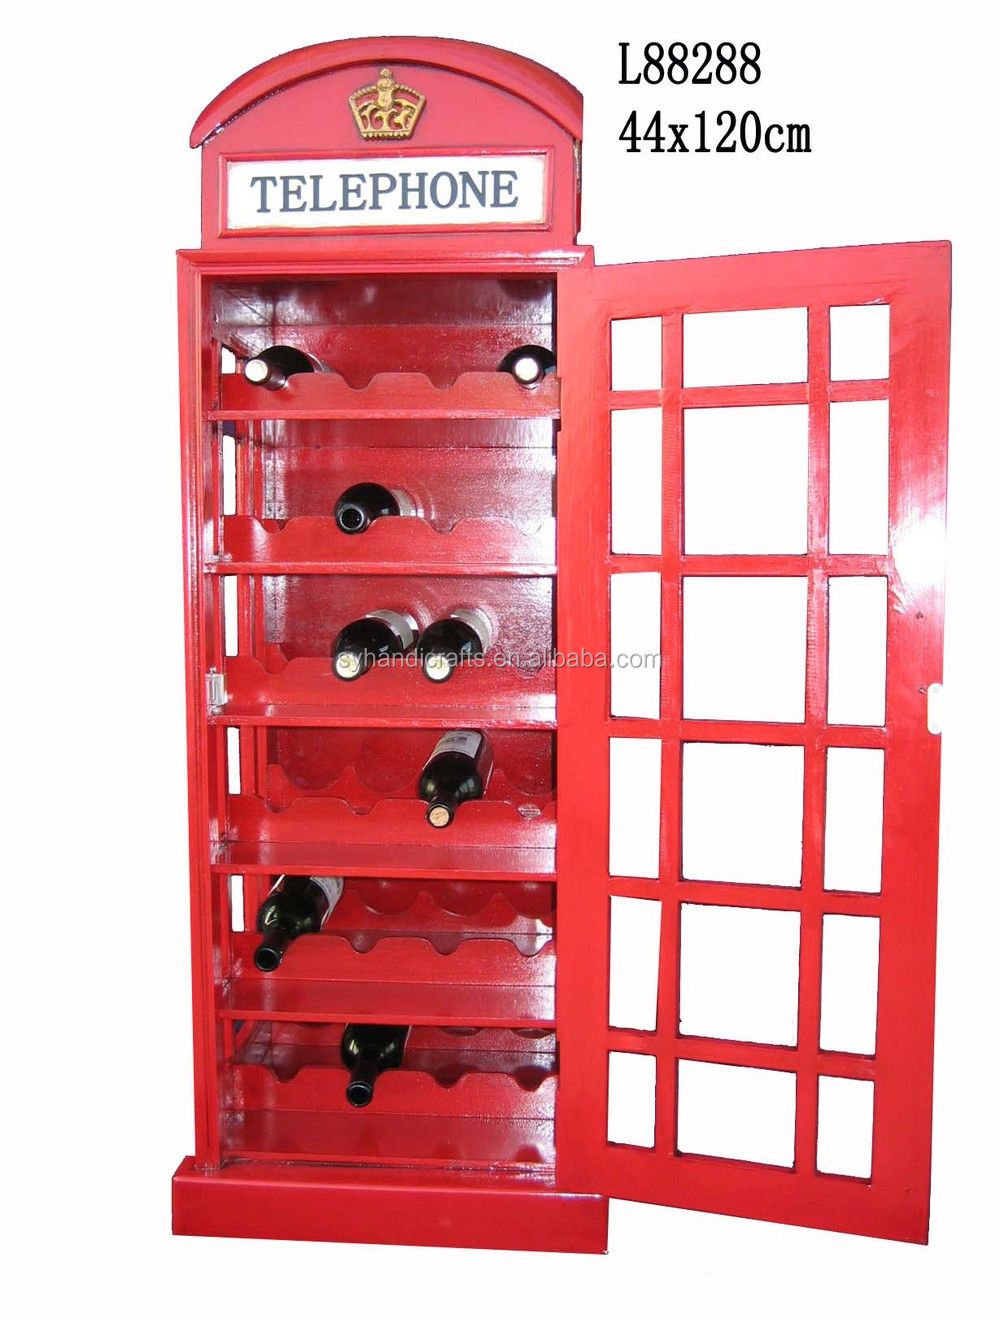 london phone booth storage london phone booth bookcase display case london phone booth image. Black Bedroom Furniture Sets. Home Design Ideas